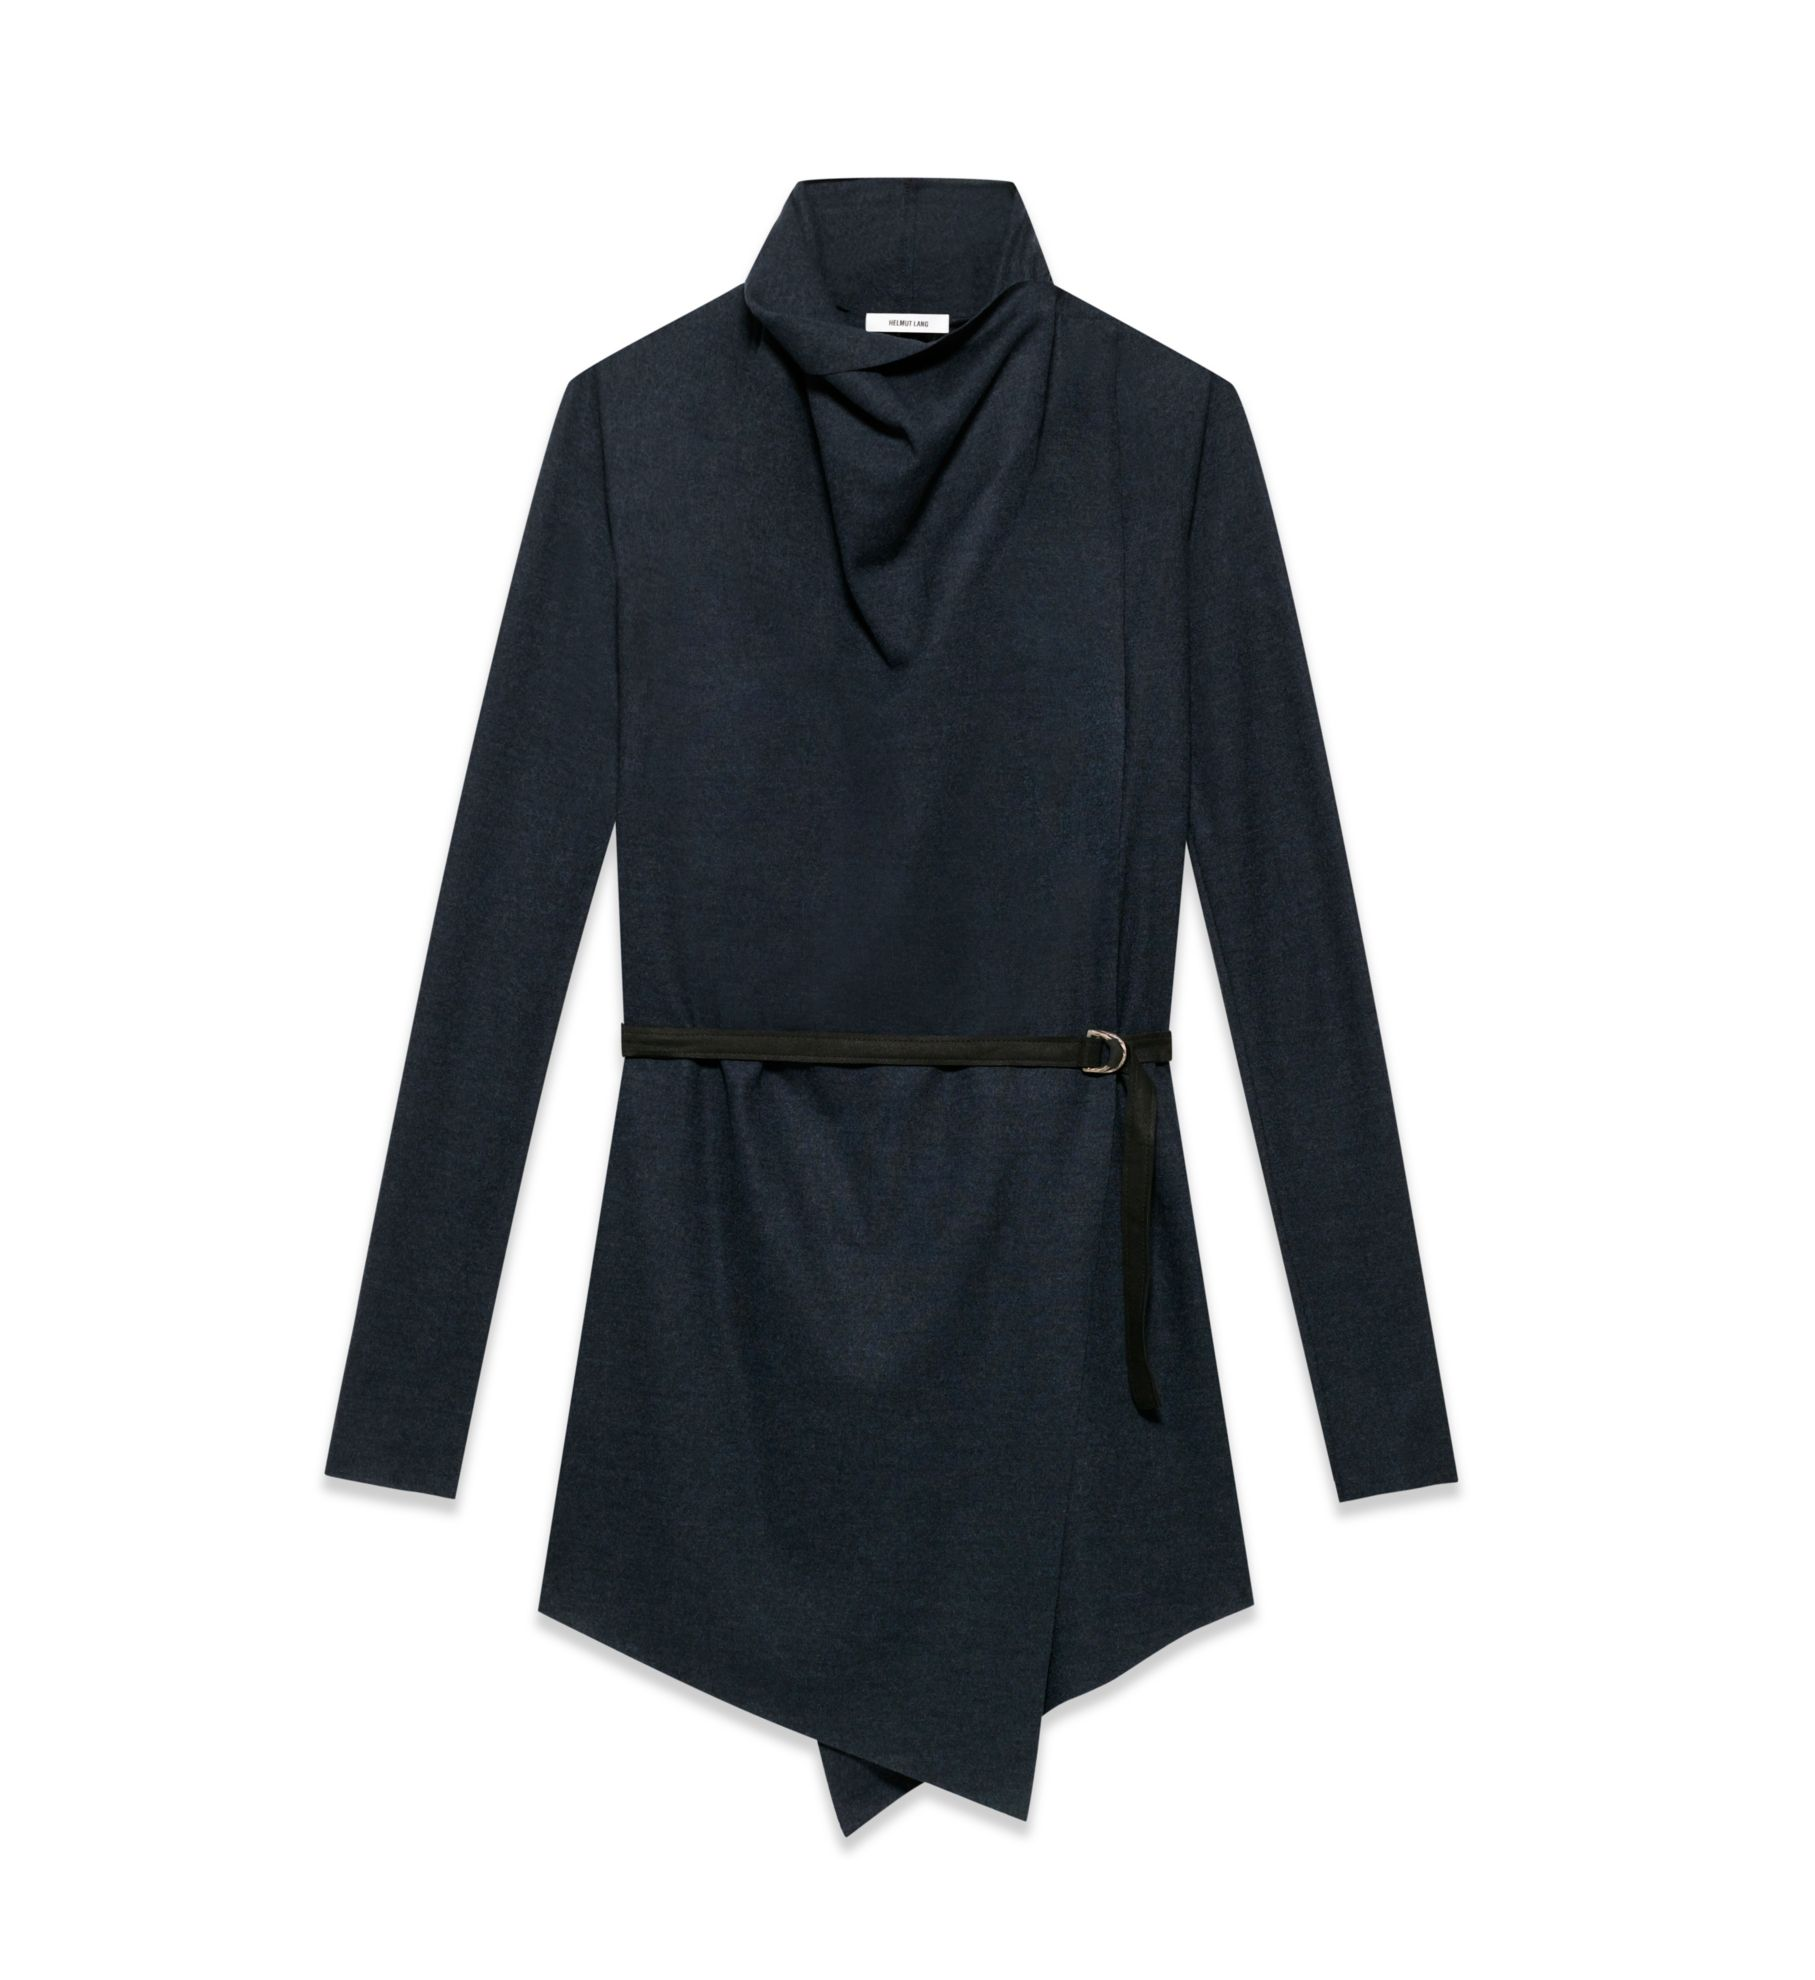 SONAR WOOL CARDIGAN